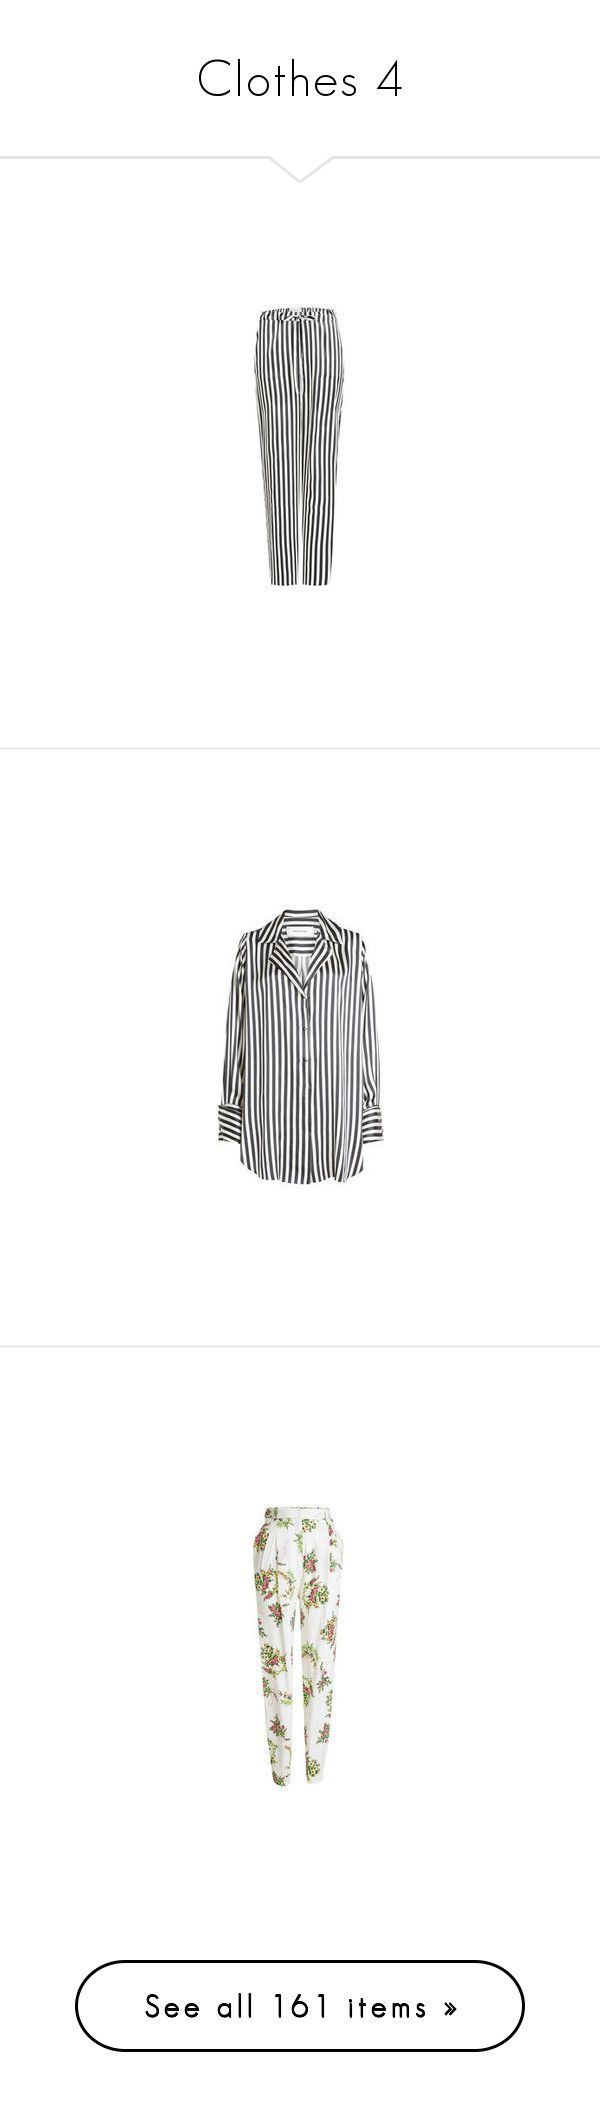 """""""Clothes 4"""" by laannu ❤ liked on Polyvore featuring tops, blouses, slouchy shirts, black and white stripe blouse, black white striped blouse, shirt blouse, stripe shirt, emilia wickstead, floral print crop top and white floral top"""